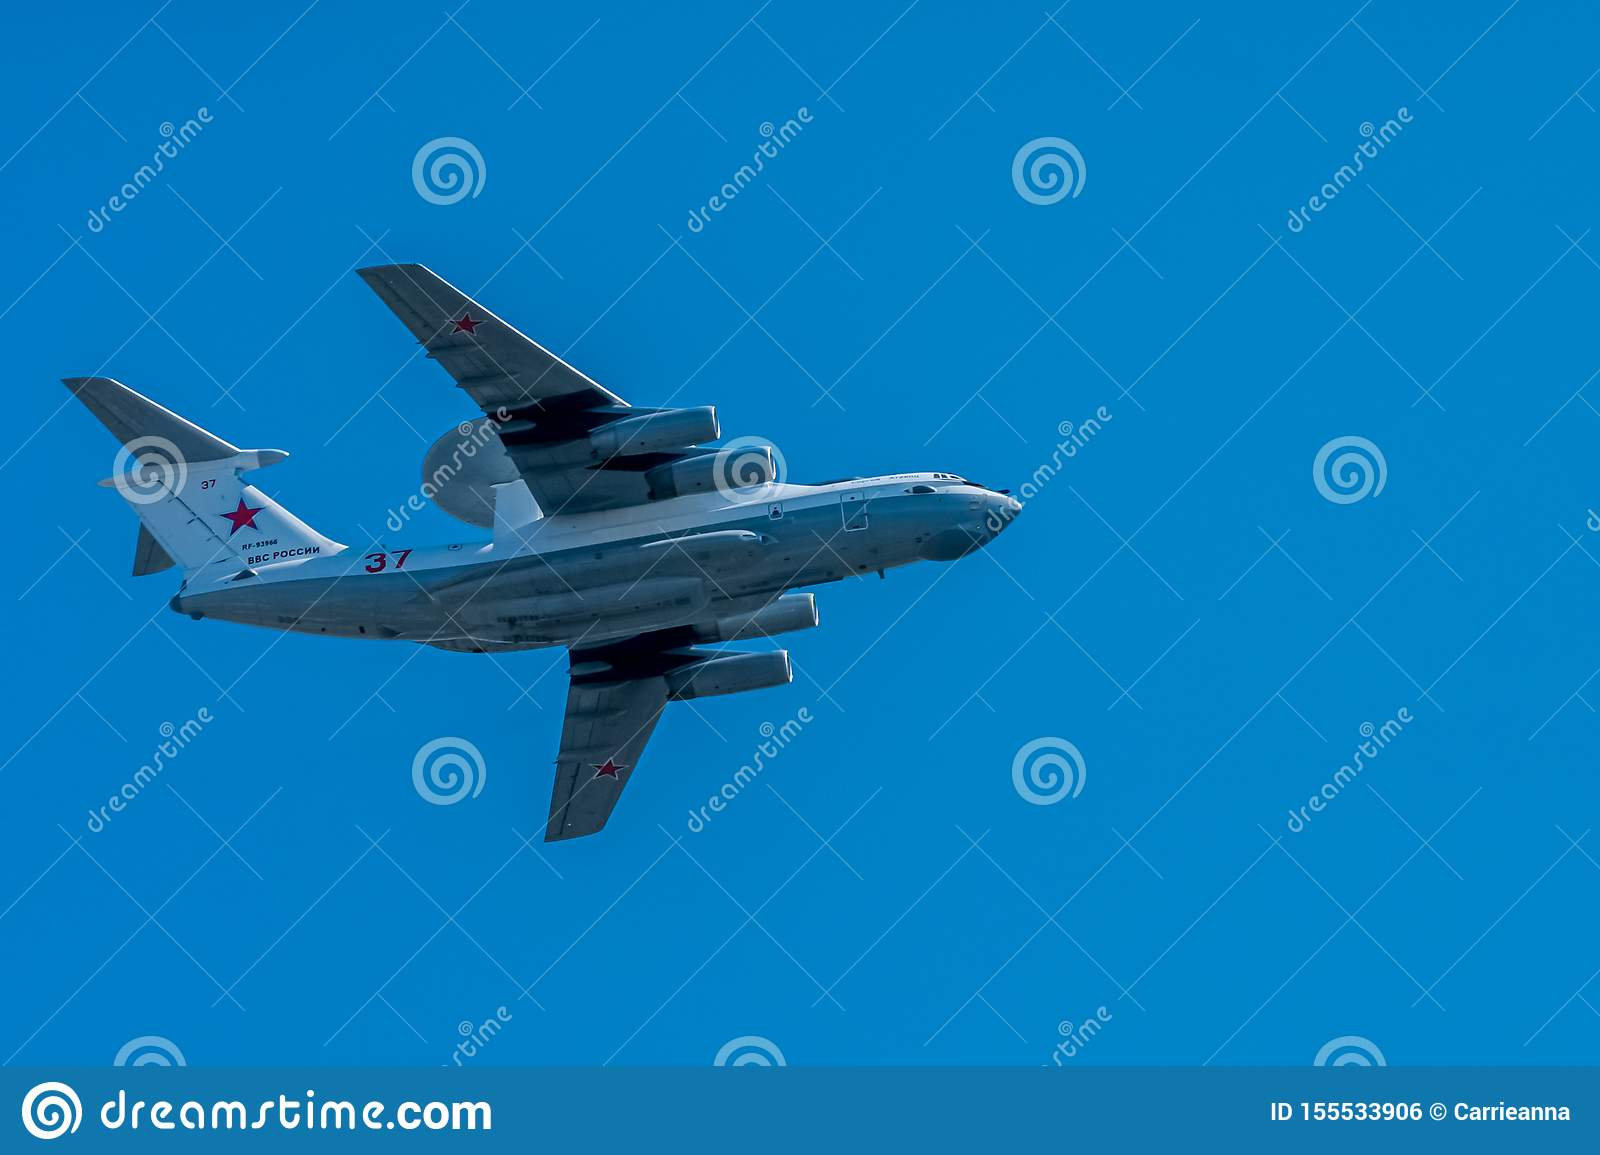 Moscow, Russia - May 09, 2014: RF-93966 Russian Federation Air Force Beriev A-50U. Aviation part of Victory parade 2014 in Moscow